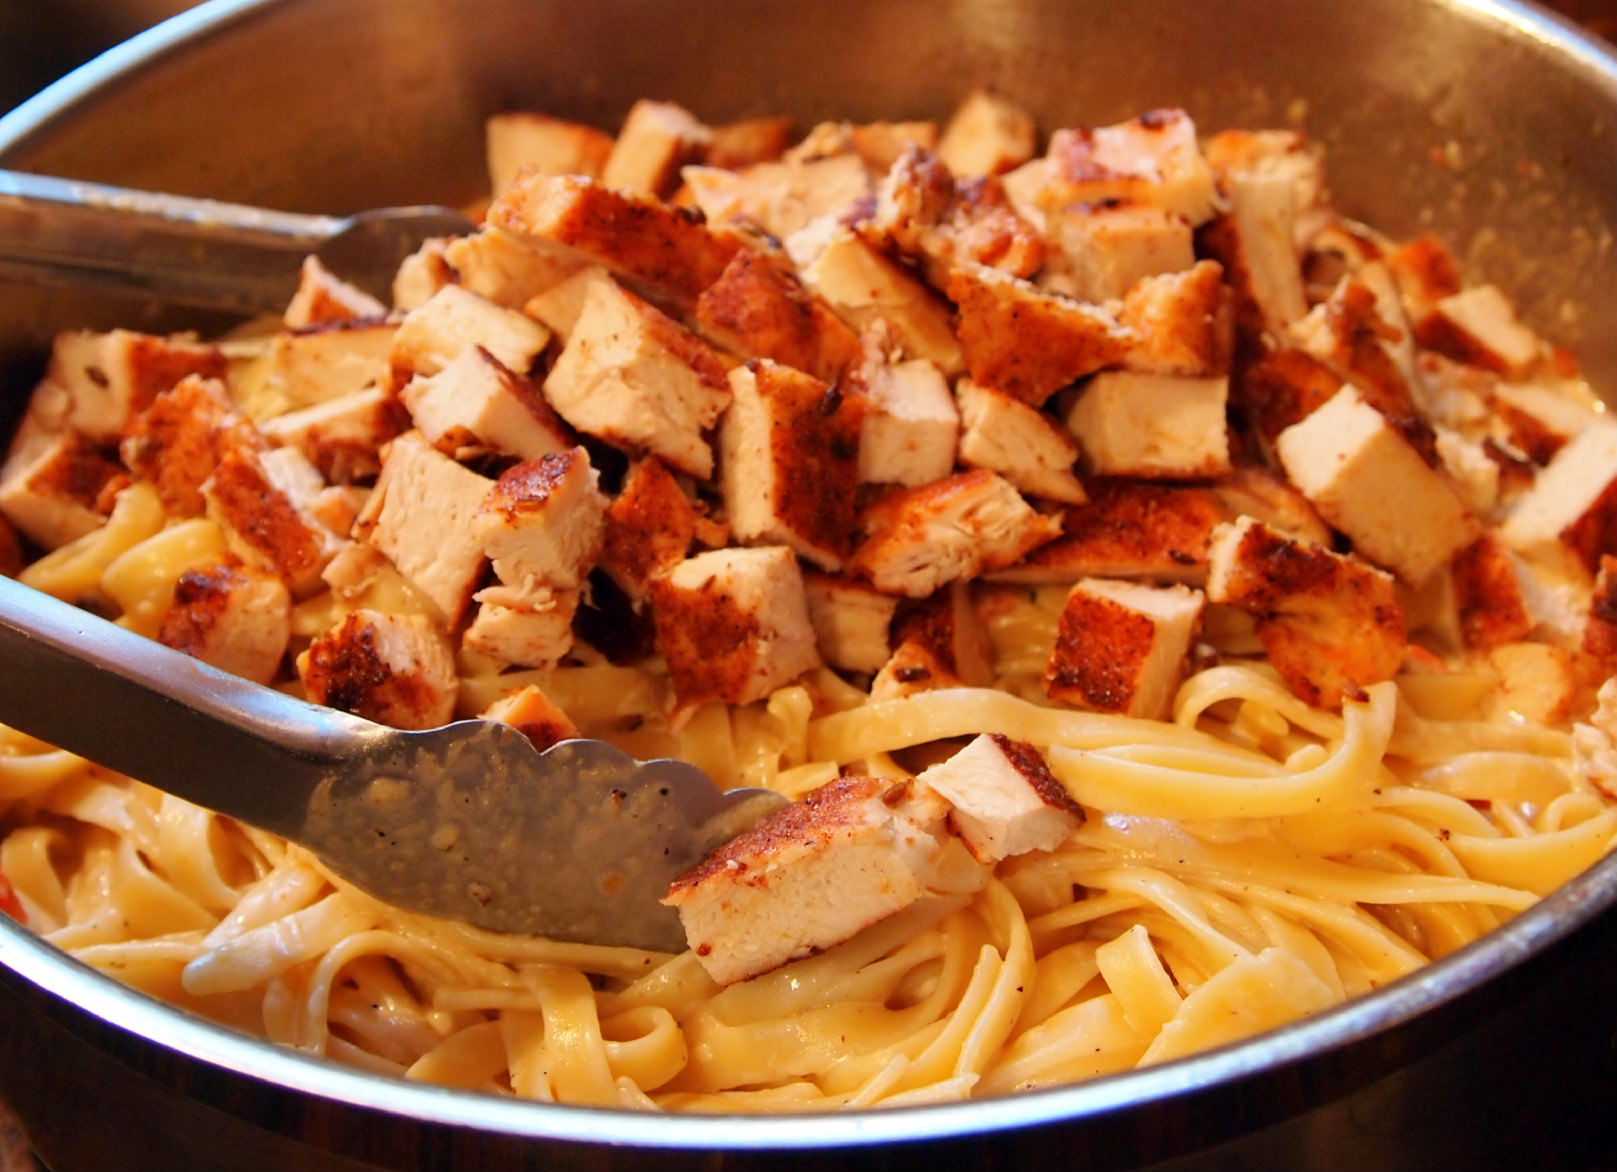 Cajun-Chicken-Fettuccine-Alfredo is a perfect meal for date night. The spicy chicken and rich cream sauce makes eating a restaurant quality meal a reality.